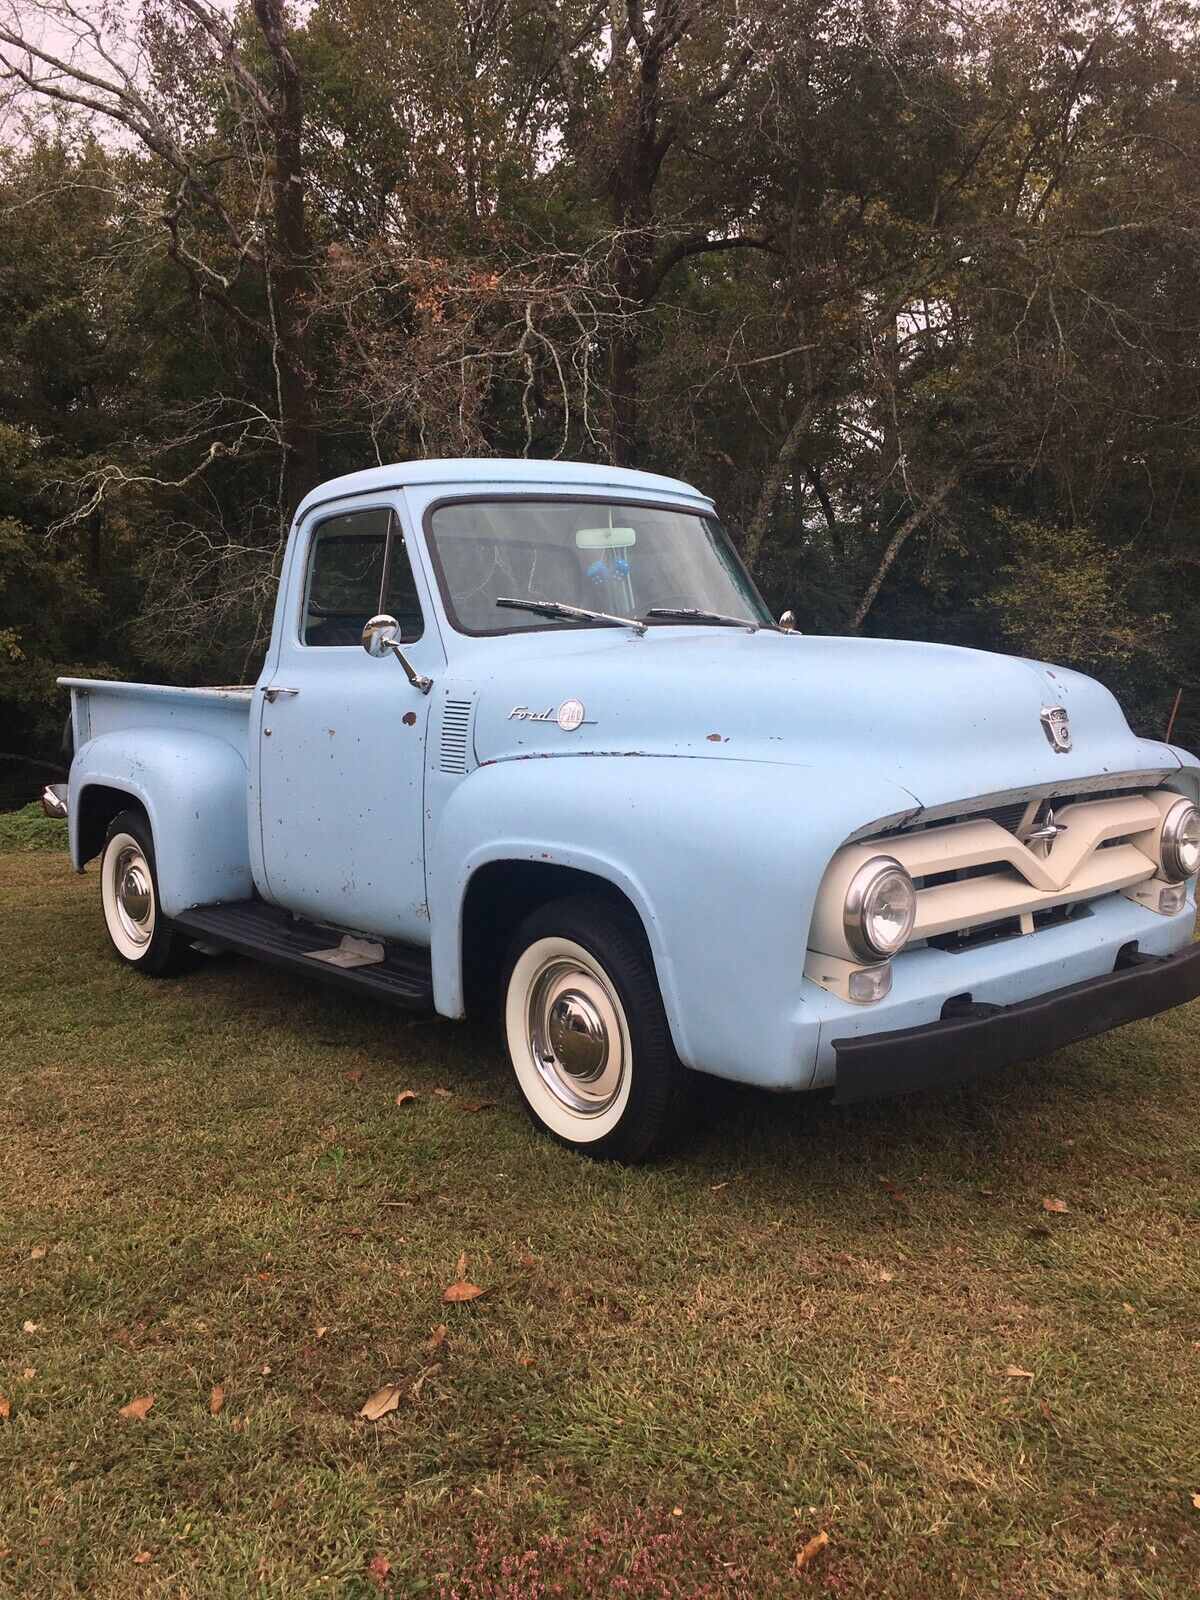 1955 Ford F100 For Sale : Manual, Channelview,, Texas,, United, States